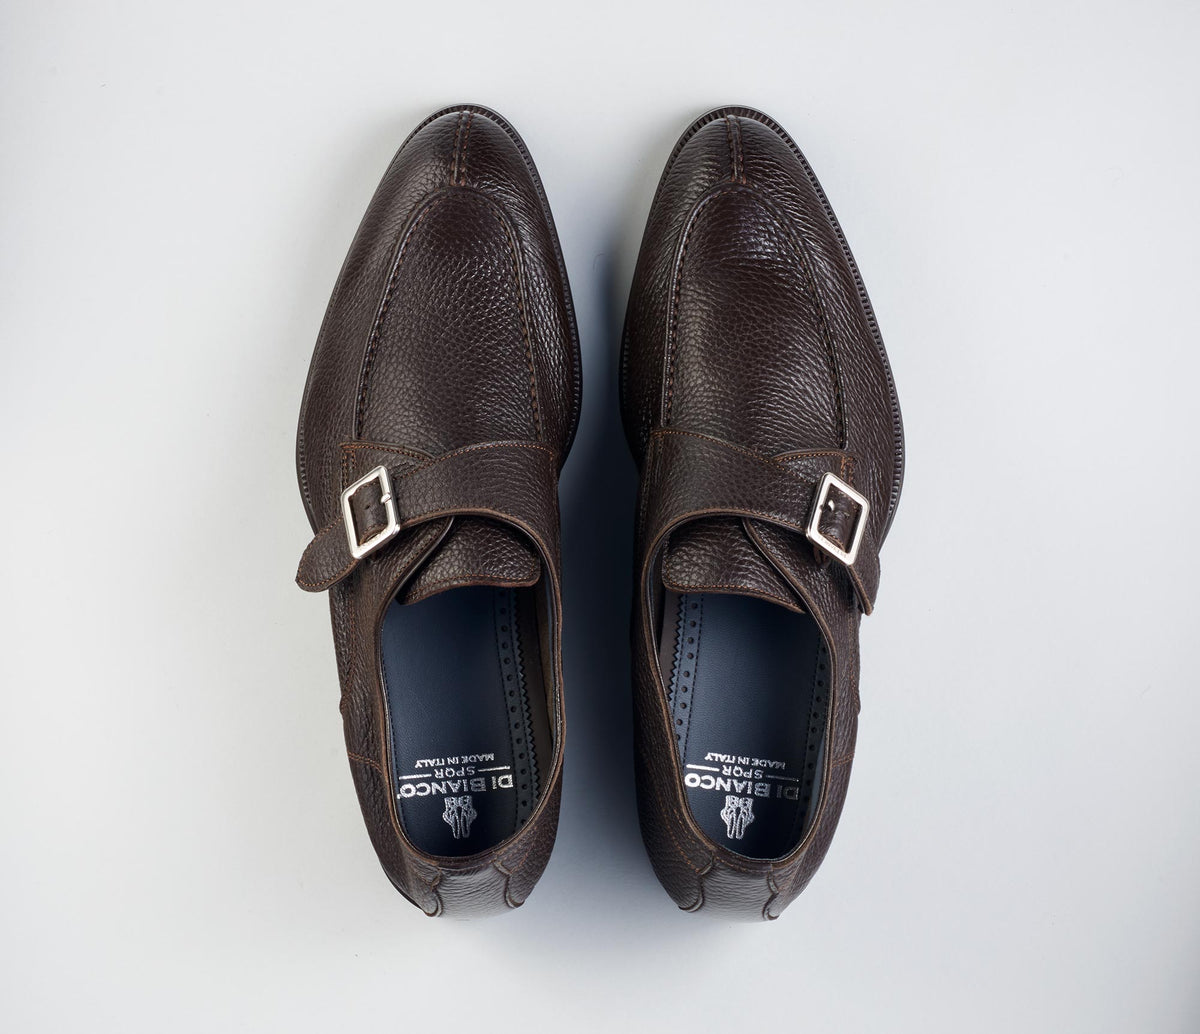 The Treviso T-Moro Monk Strap Shoes